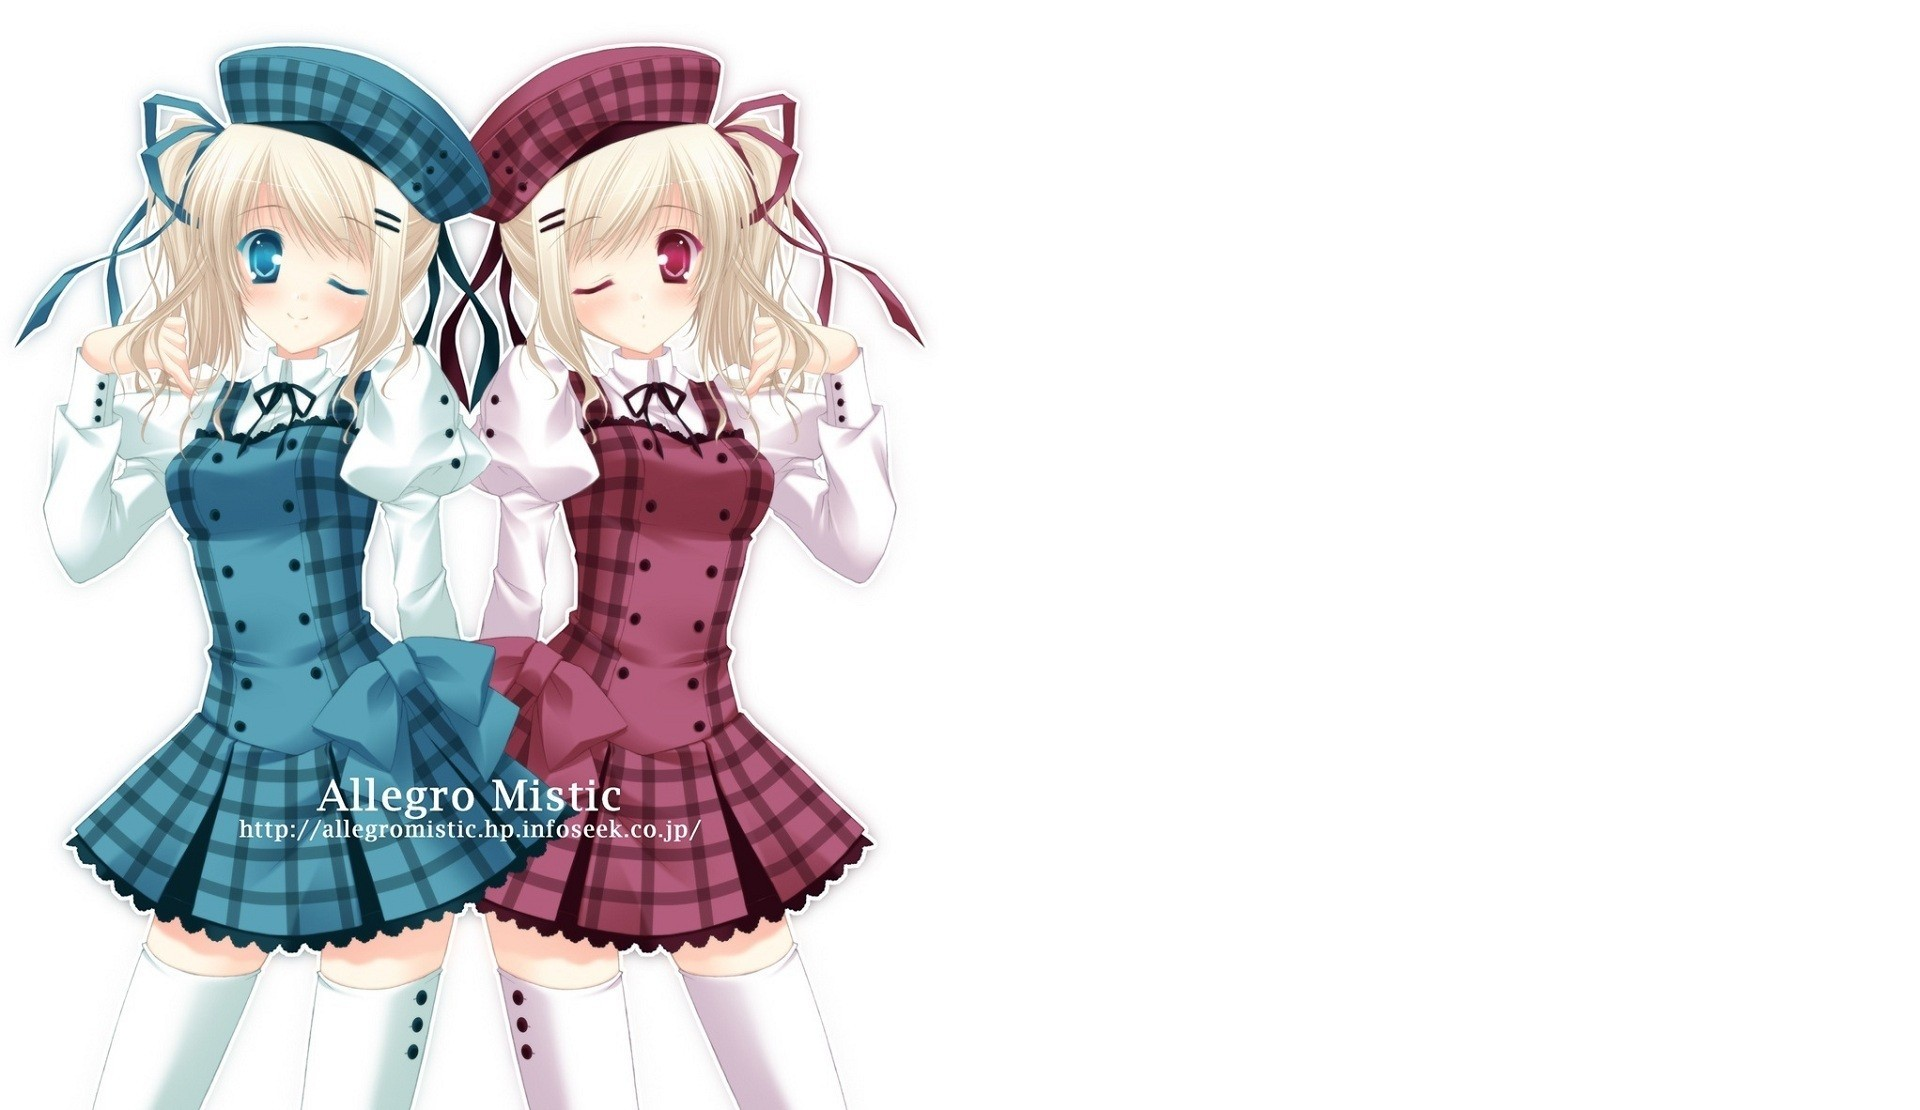 blondes blue eyes skirts HD Wallpaper